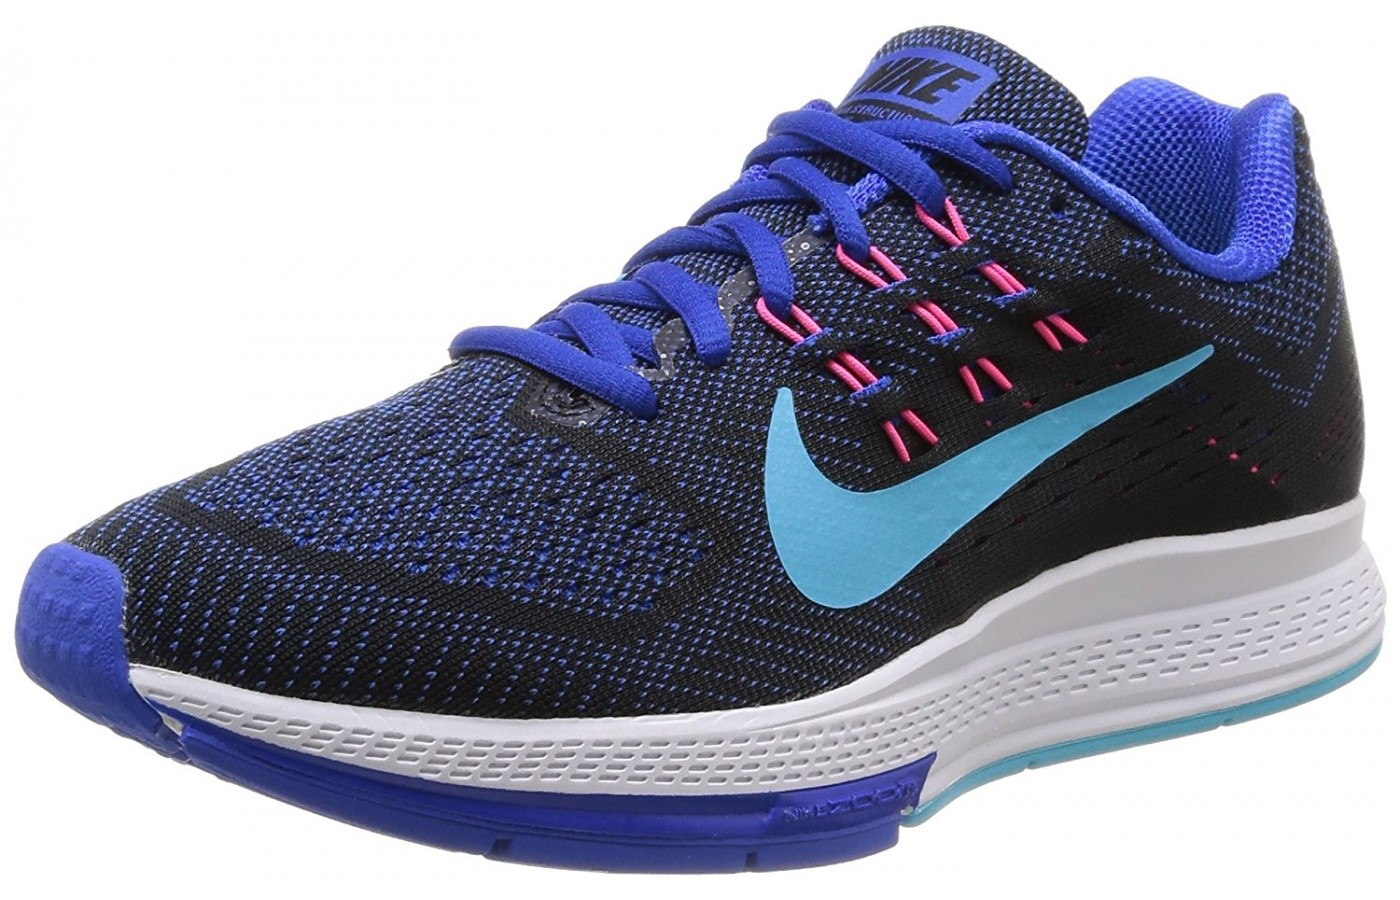 official photos 802ea b6c20 A three quarter view of the Nike Air Zoom Structure running shoe ...